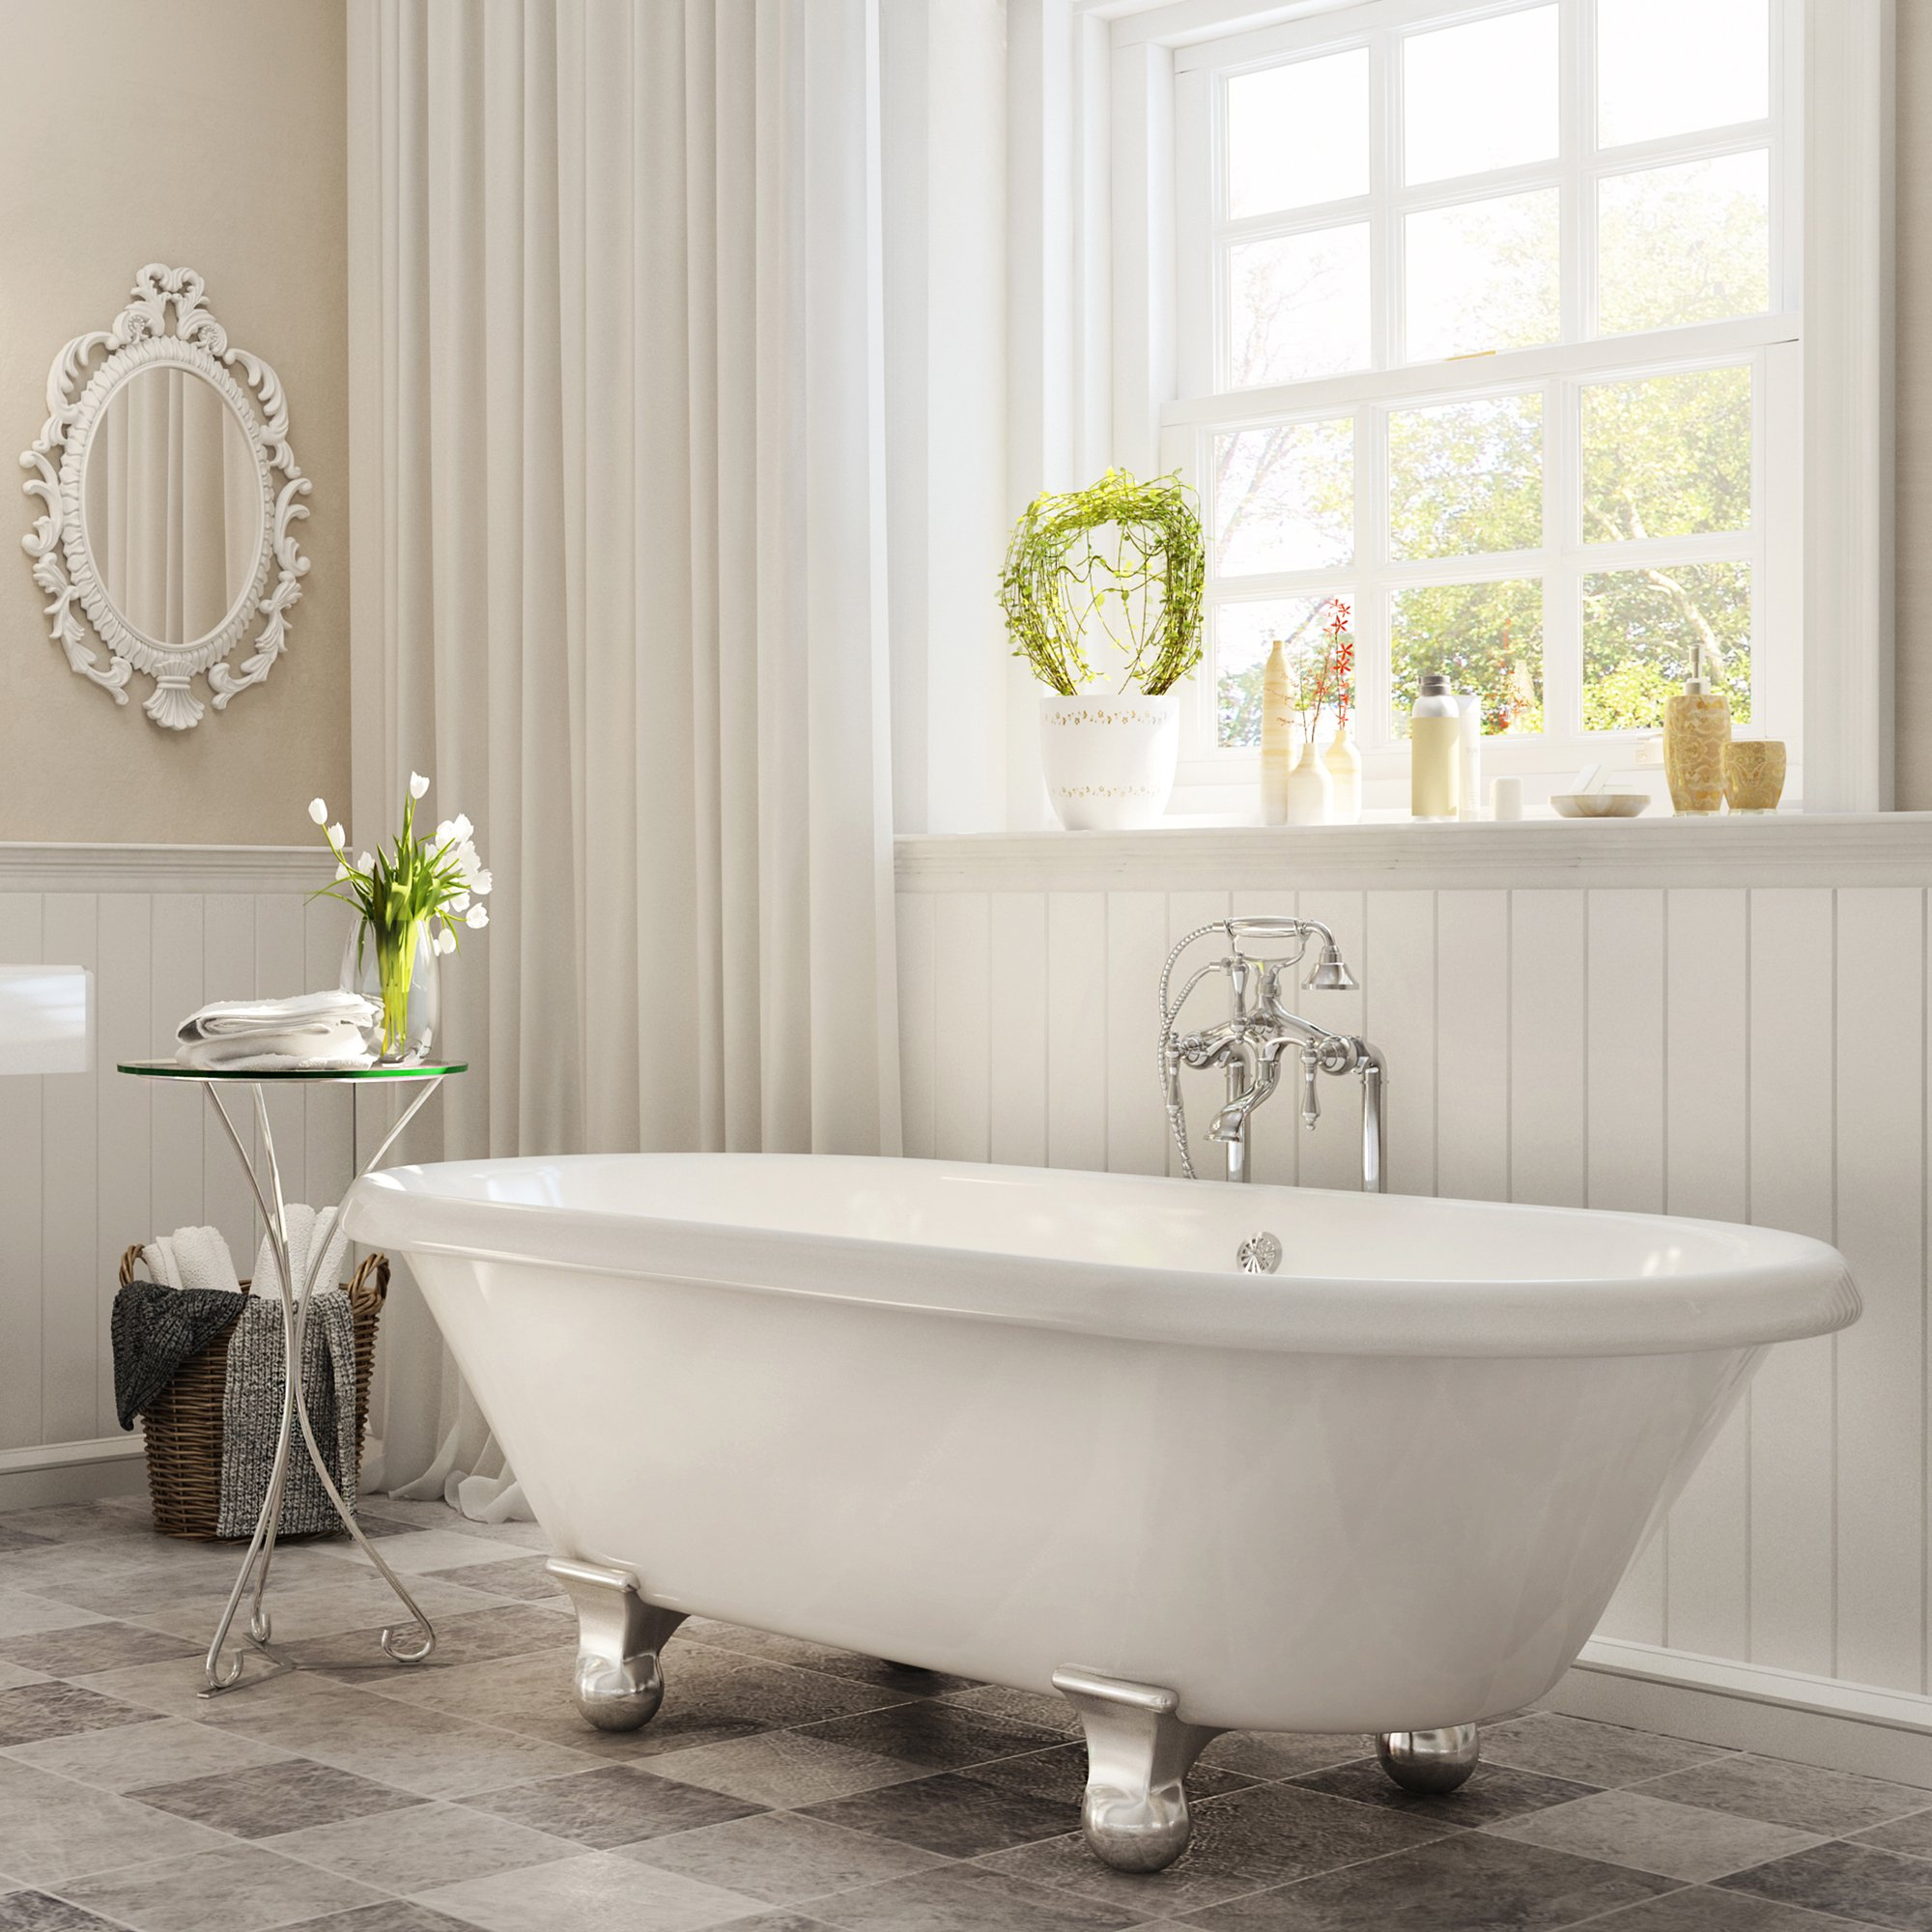 Luxury 60 inch Modern Clawfoot Tub in White with Stand-Alone Freestanding Tub Design, includes Modern Polished Chrome Cannonball Feet and Drain, from The Dalton Collection